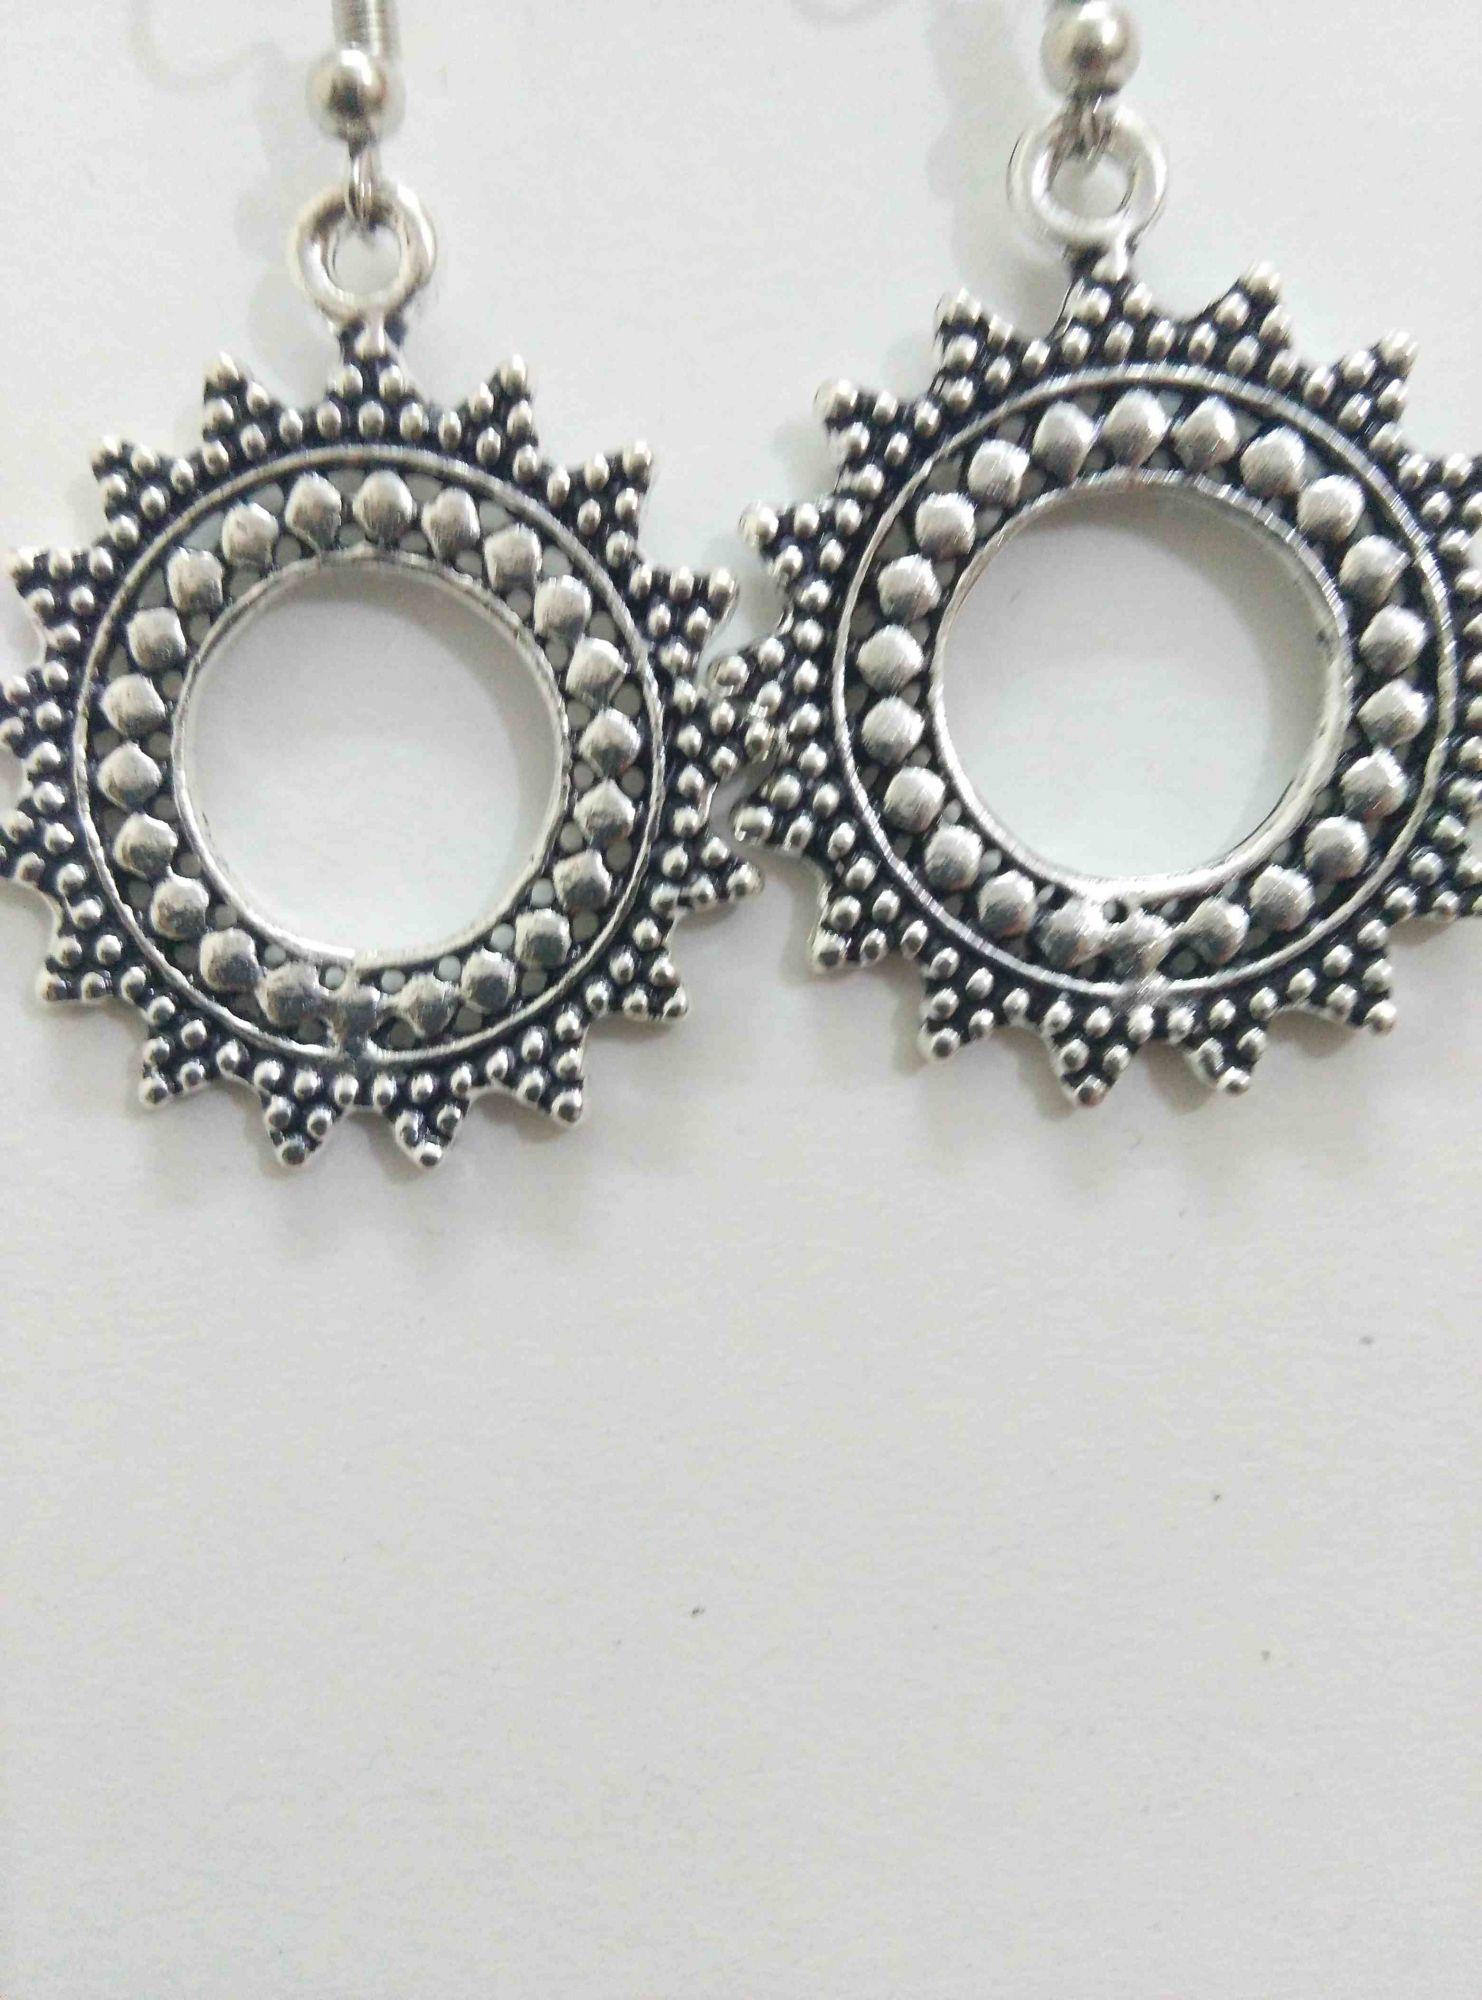 rings rajputi sunday culture shekhawat september of am earrings design on written rajasthani rajul by gold rajasthan ear